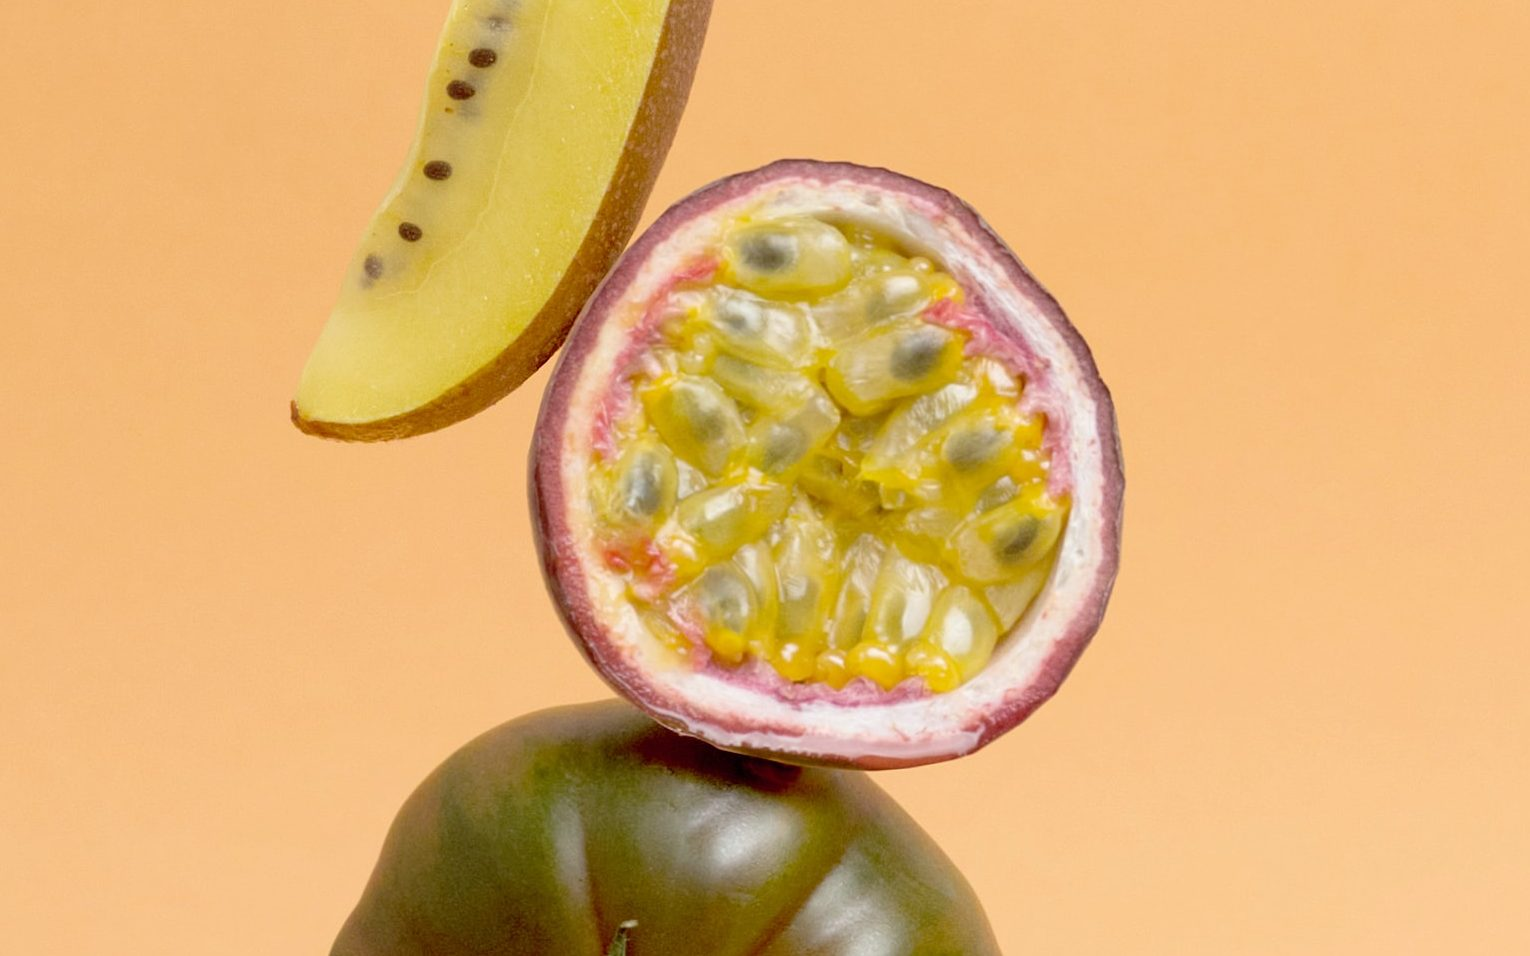 Faithful Fruit: Sign Of The Cross Hidden In The Passion Flower